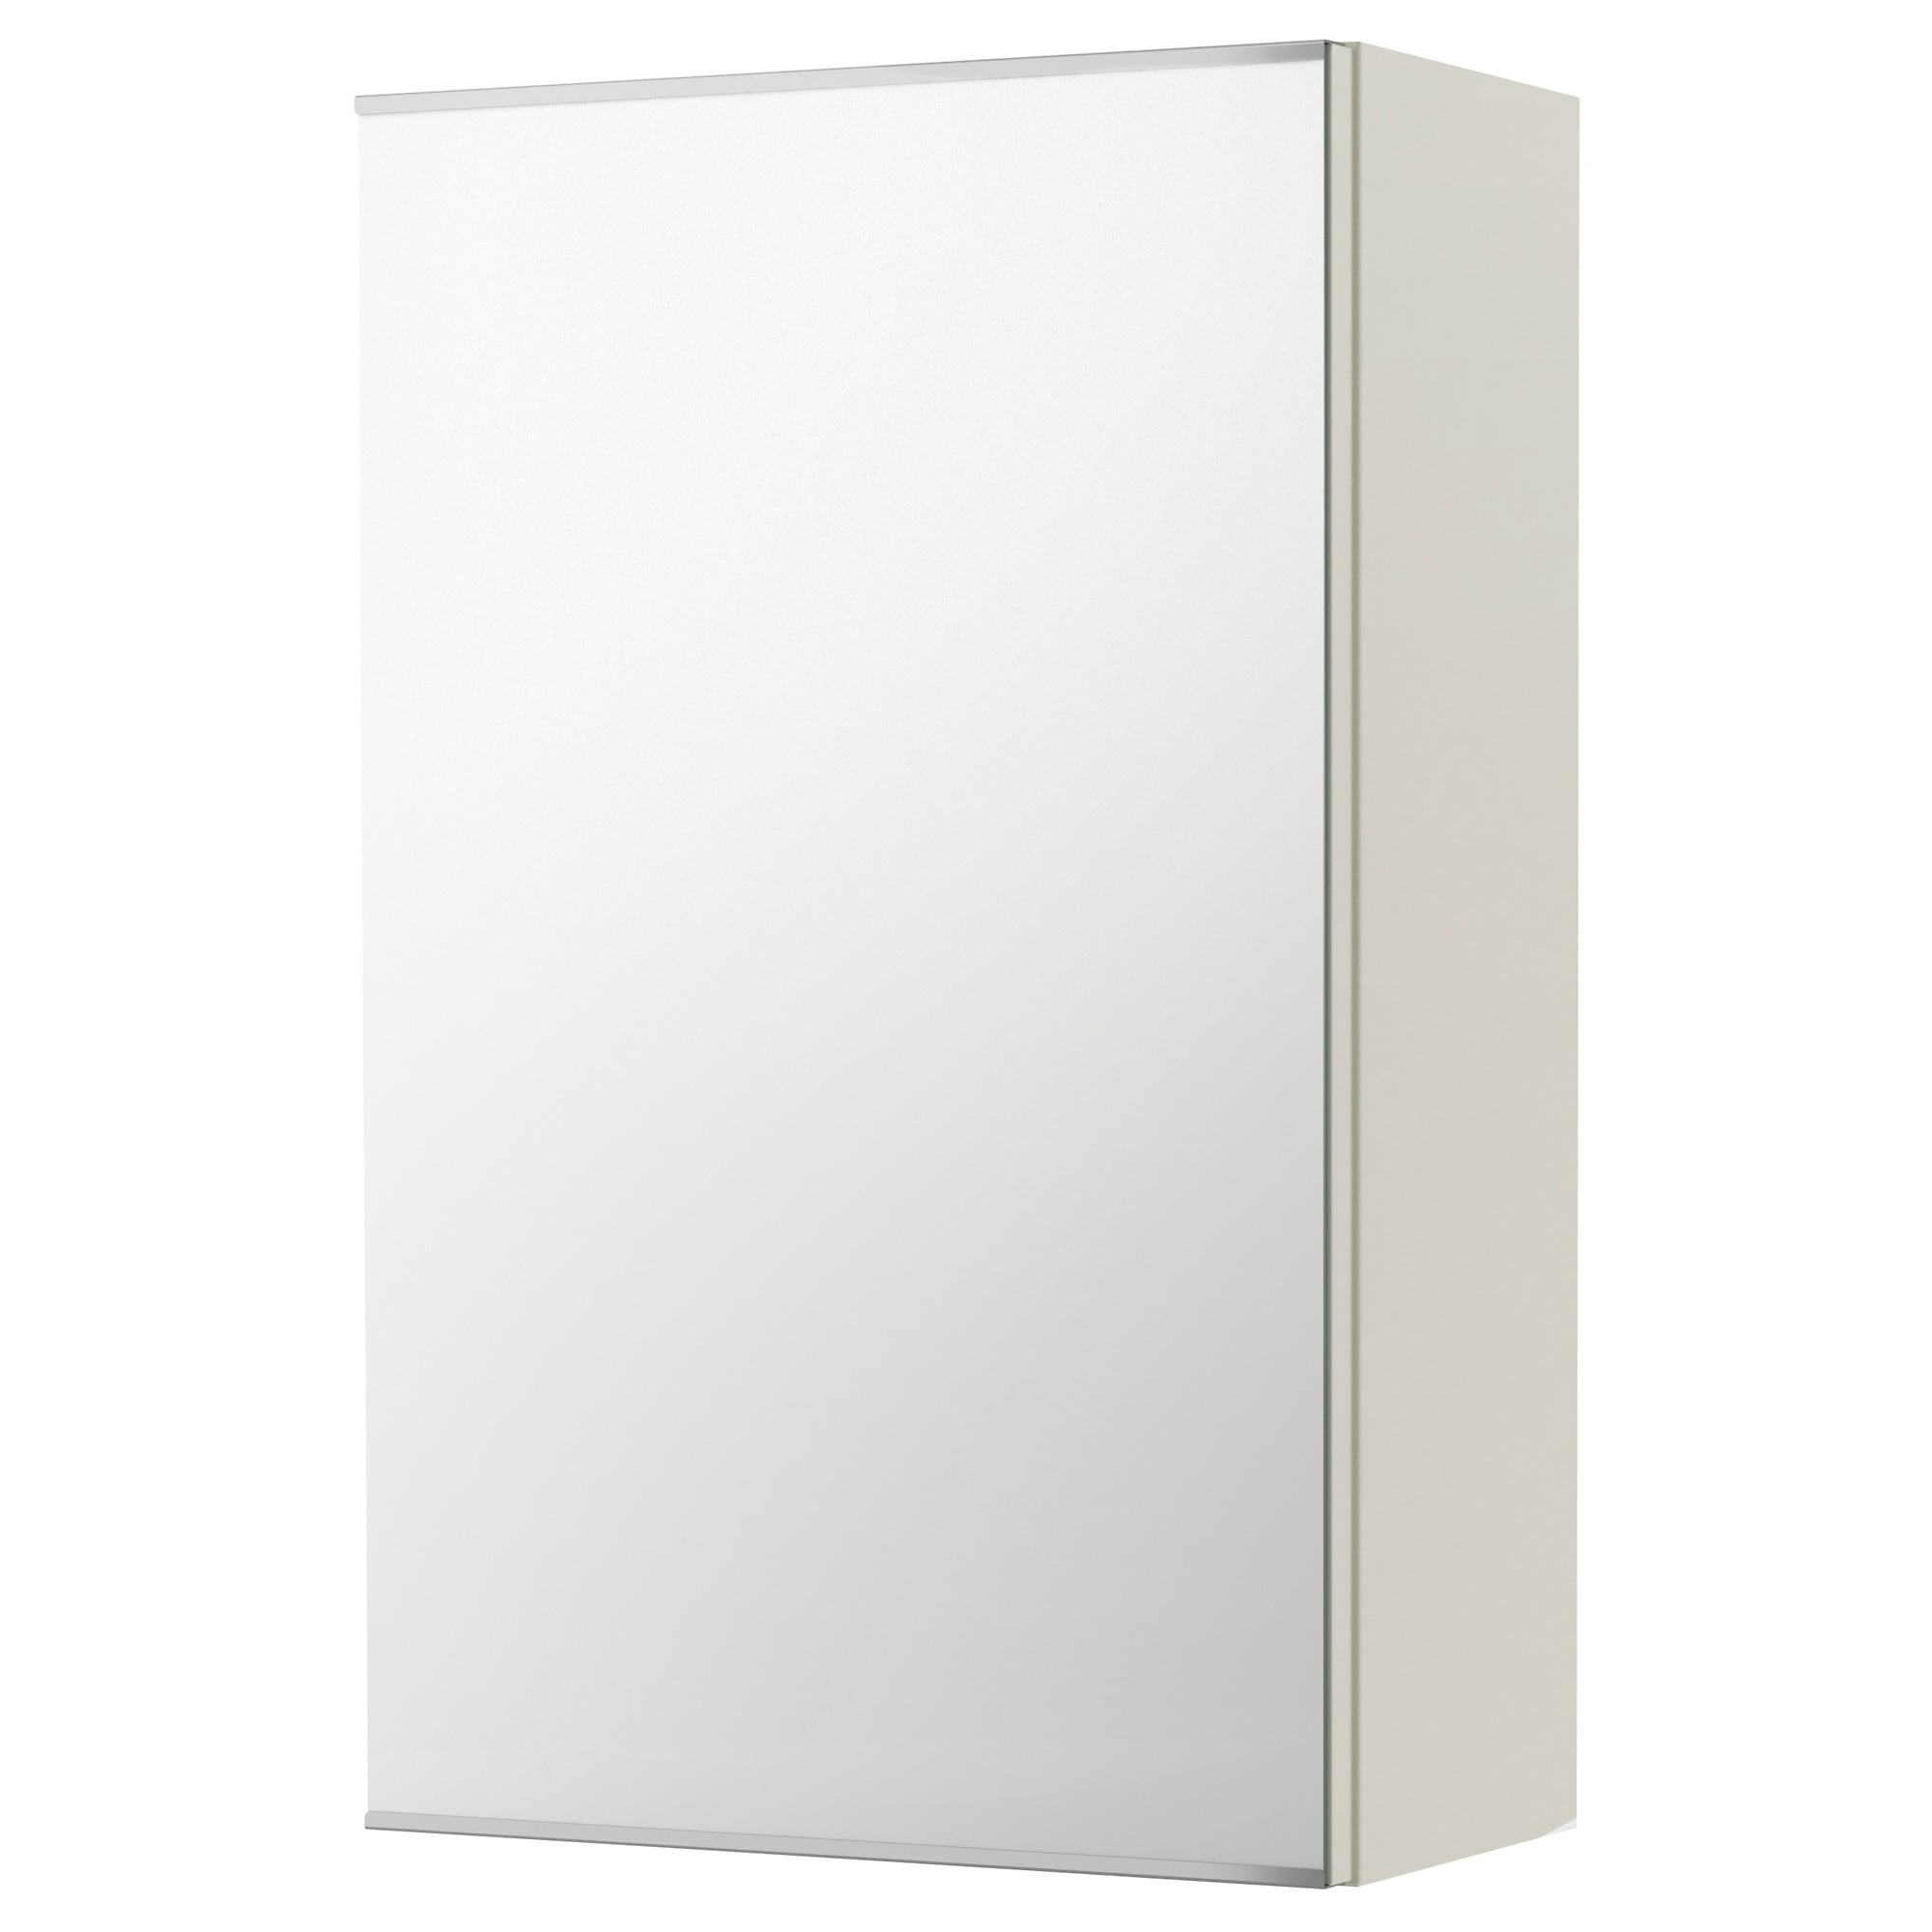 Bathroom wall cabinets with mirrors - Lill Ngen Mirror Cabinet With 1 Door White Width 15 3 4 Depth